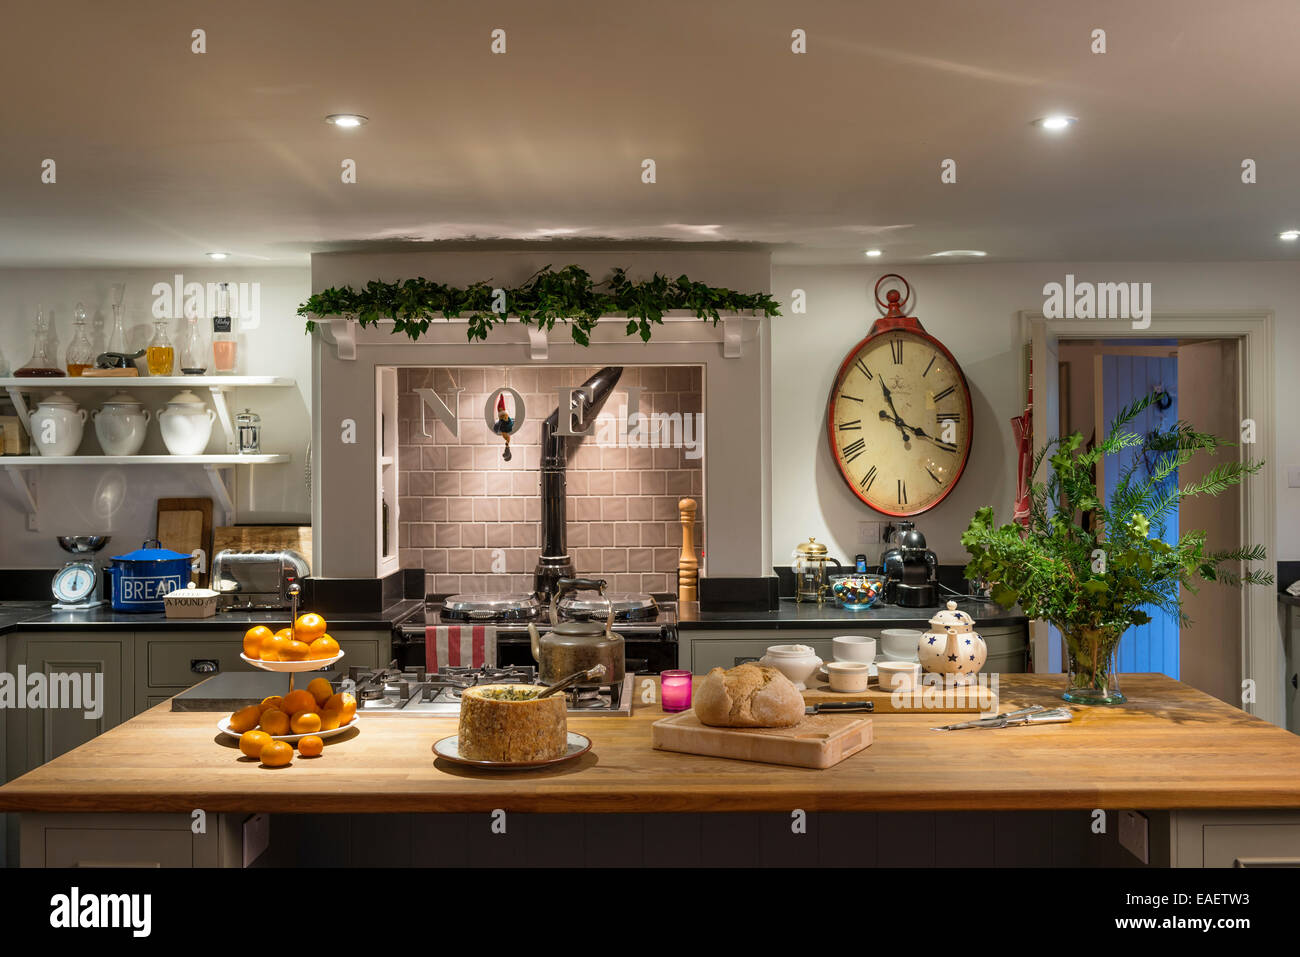 Cheese, bread and satsumas on wood topped butchers island in kitchen with aga and large red wall clock from Graham - Stock Image